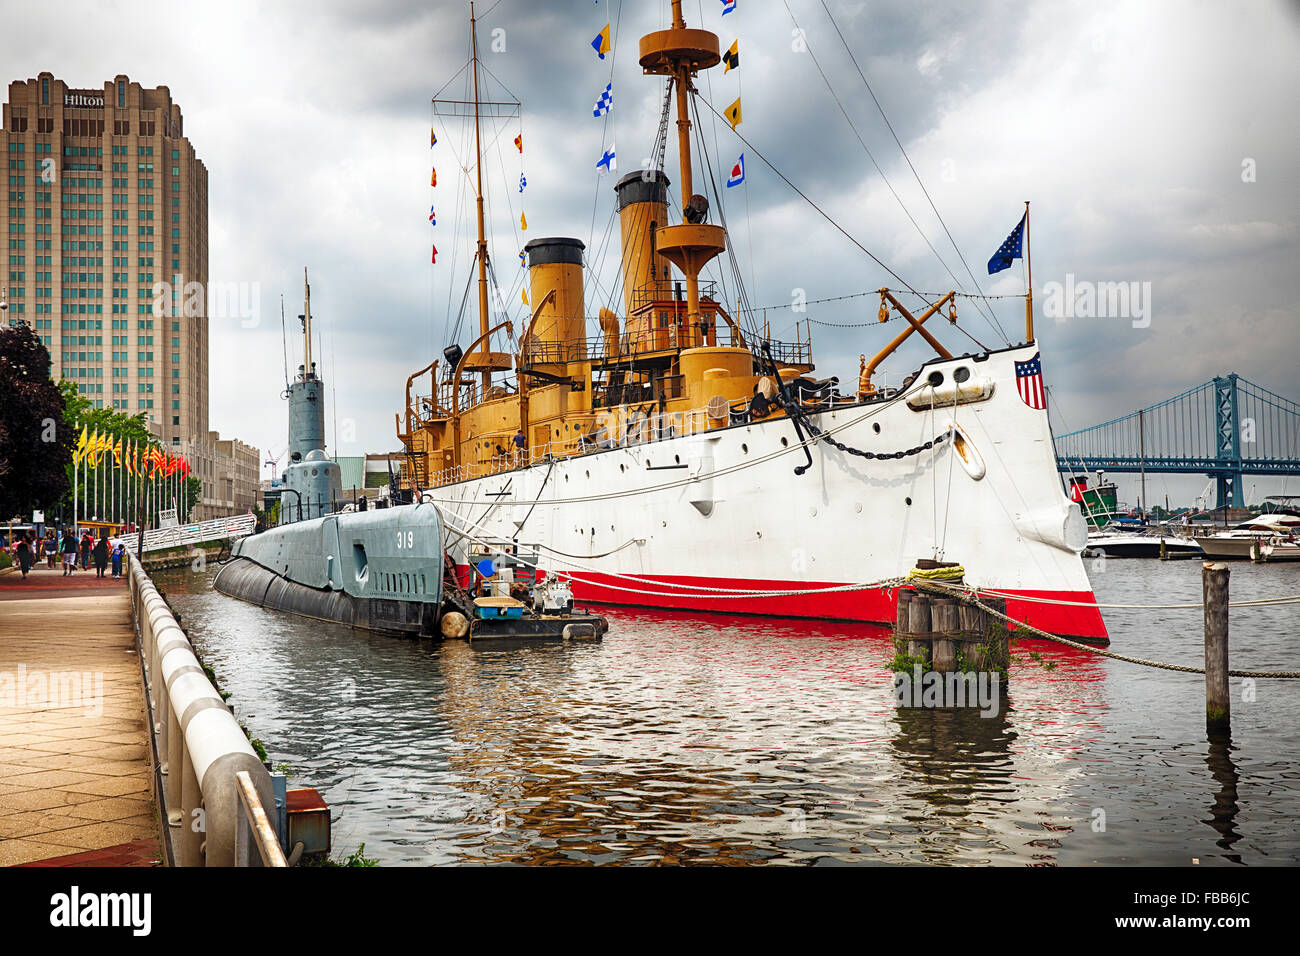 View of The Olympia Warship and the Becuna Submarine Docked at The Independence Seaport Museum, Philadelphia, Pennsylvania - Stock Image